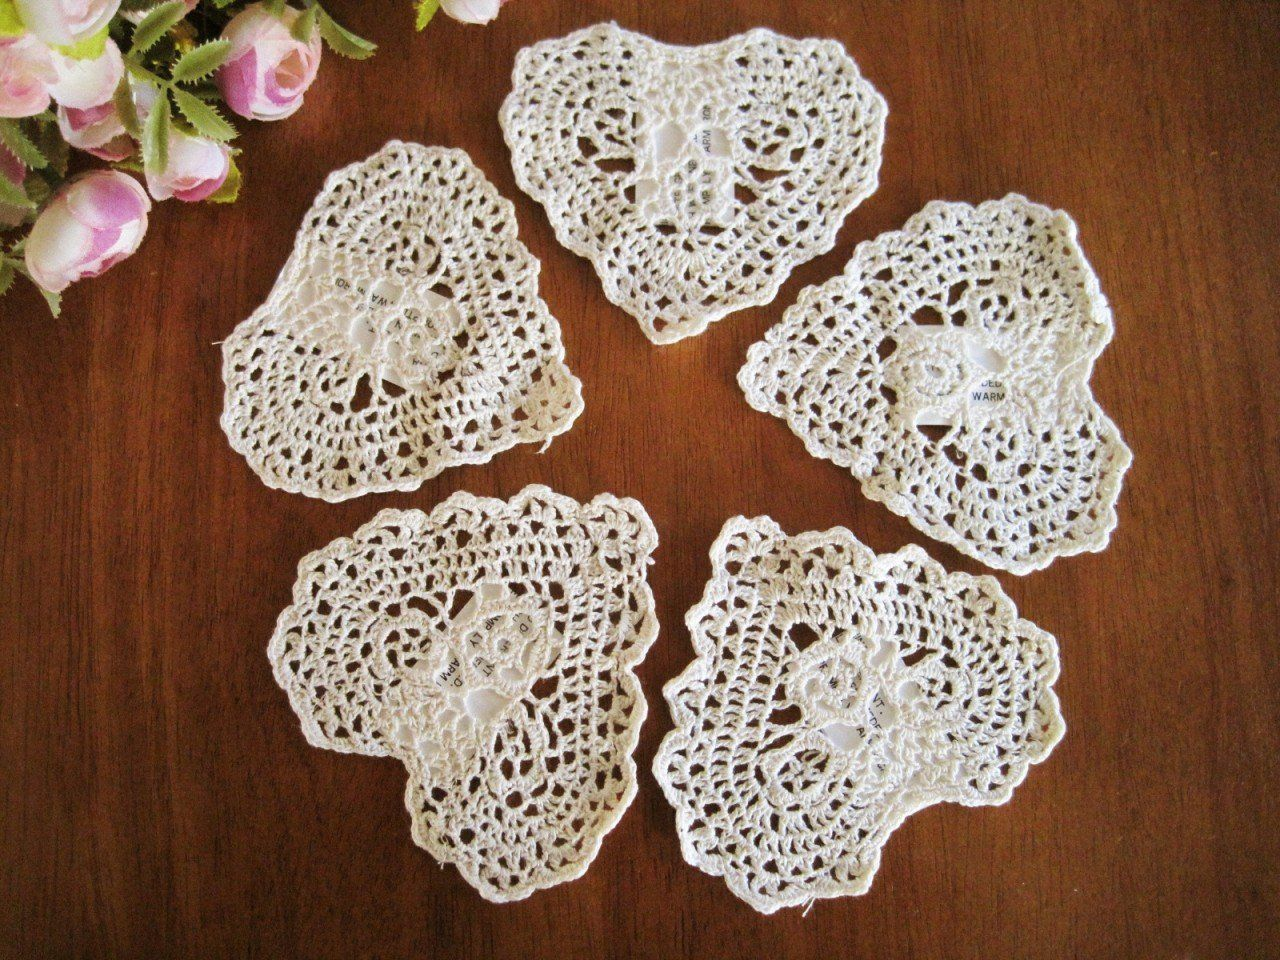 Crochet heart patterns free crochetdoilies free patterns crochet heart patterns free crochetdoilies free patterns for crocheting freebies bankloansurffo Image collections